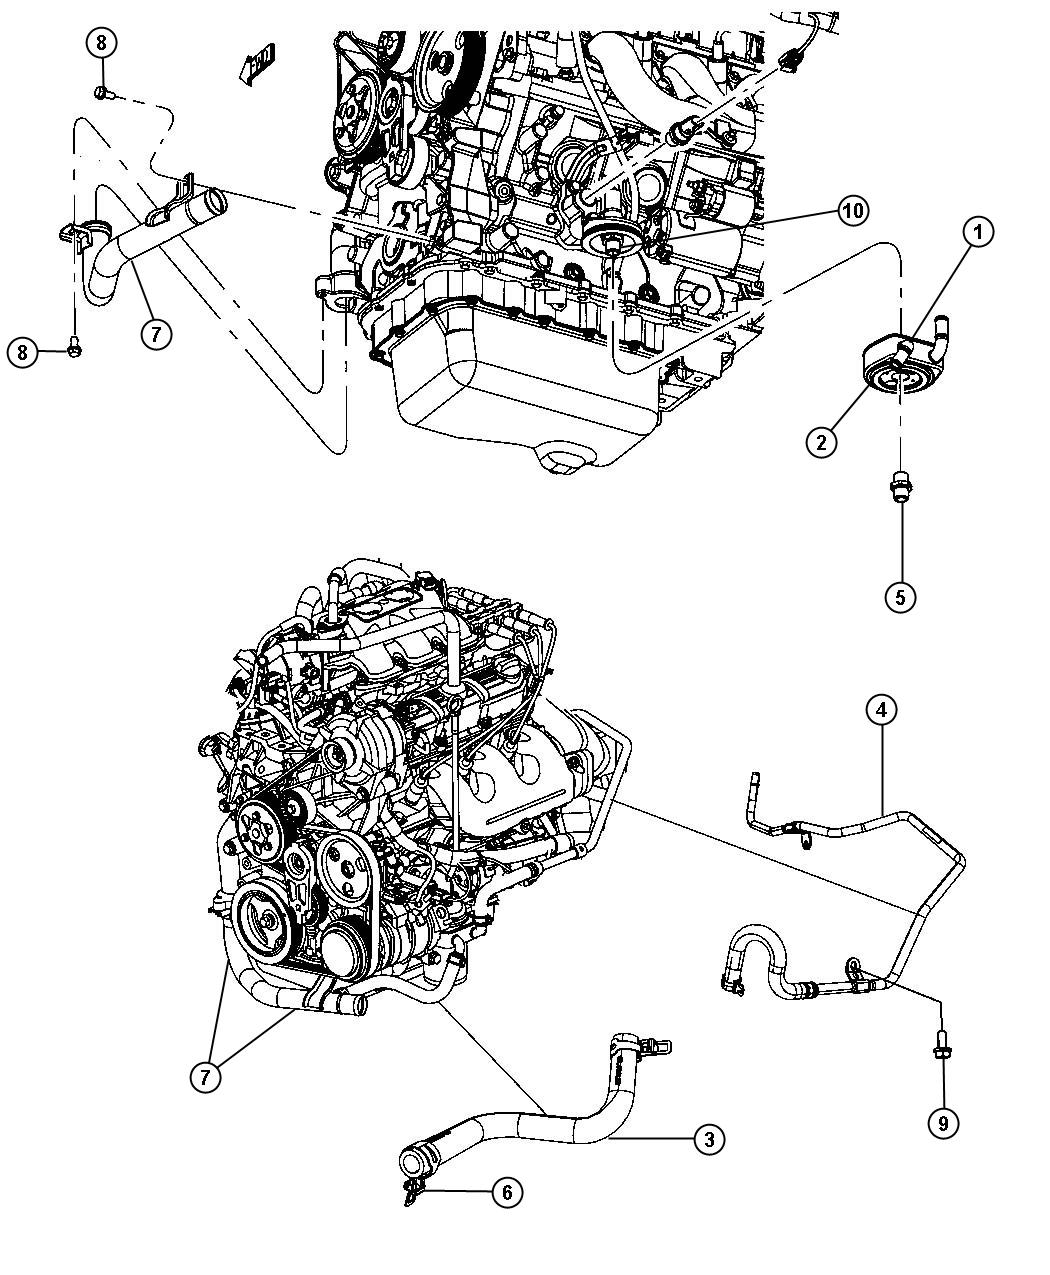 3 3l Engine Diagram All Kind Of Wiring Diagrams 2002 Chrysler Voyager Free Image For User Manual Download 2001 Sebring